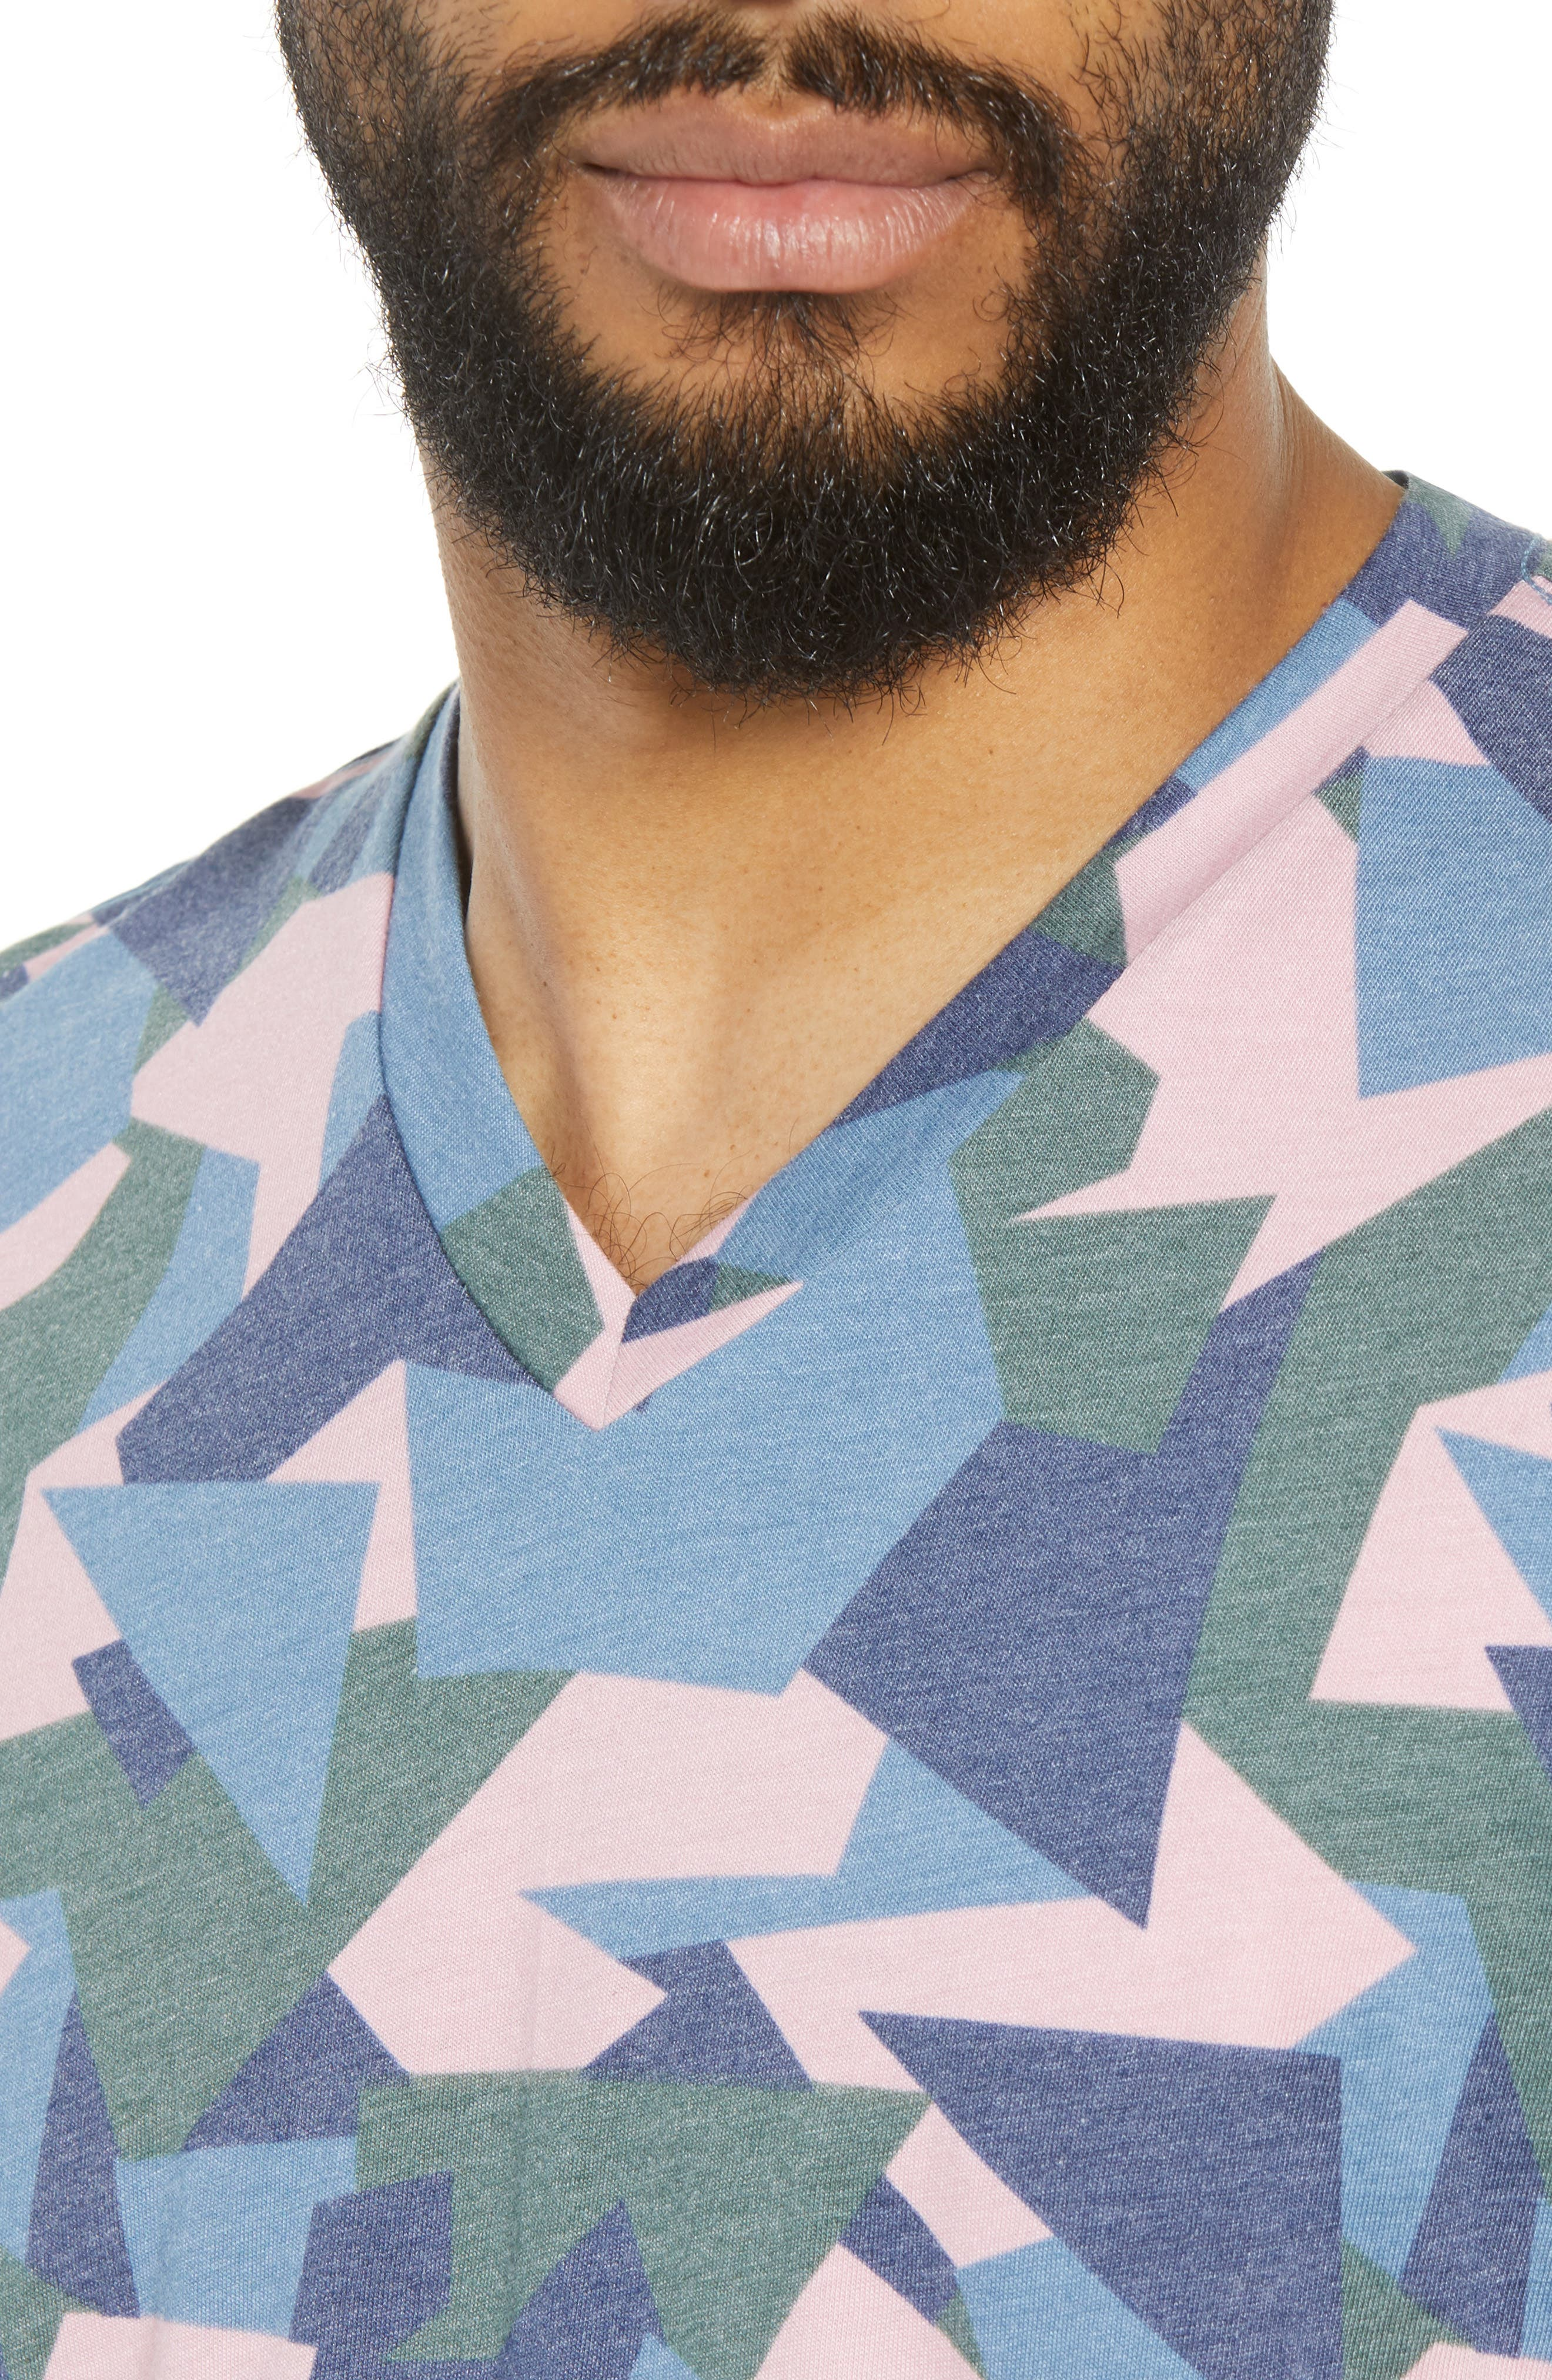 V-Neck T-Shirt,                             Alternate thumbnail 4, color,                             Pink / Grey Abstract Geo Camo